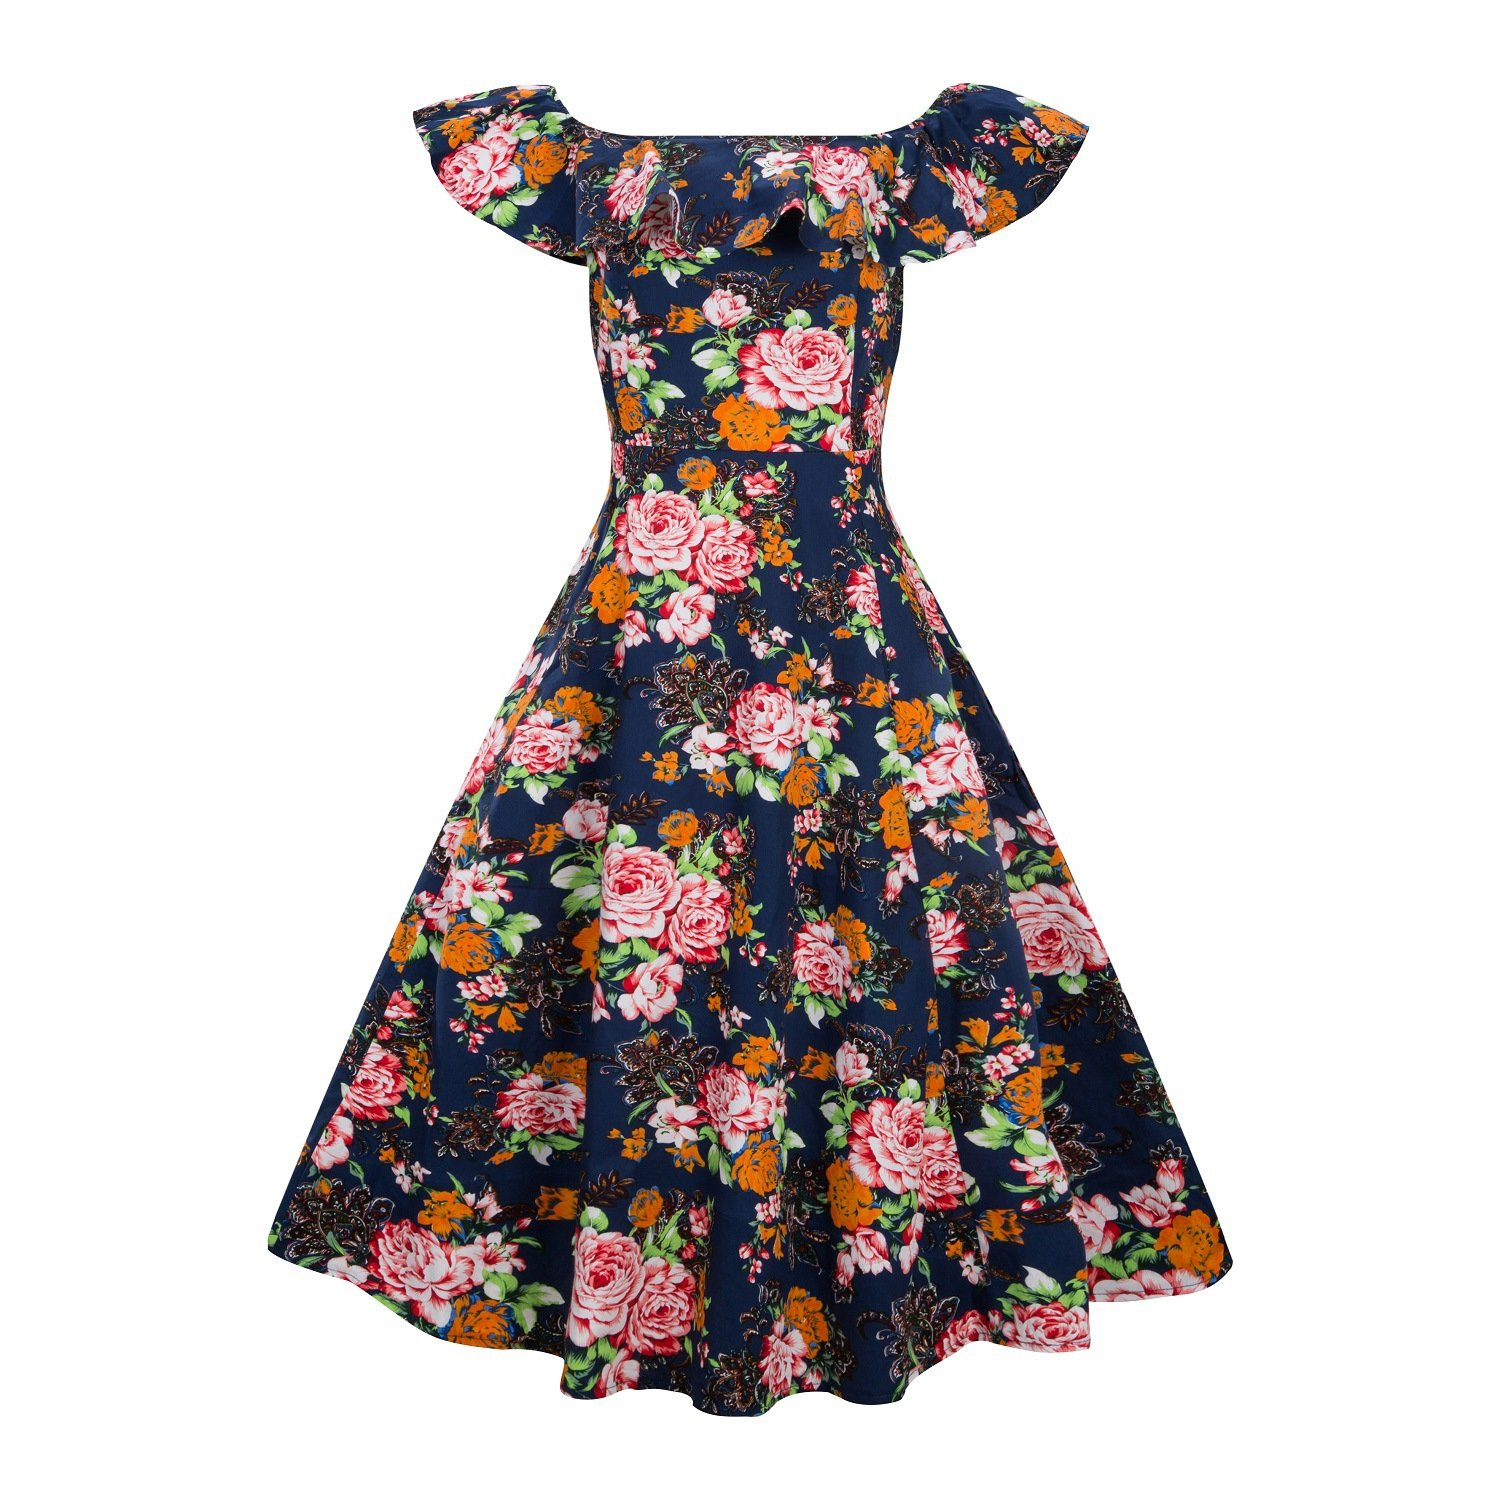 5545a02980f1 Features  Ruffle Off Shoulder Floral Print Dress   Concealed zipper. Start  with this vintage yet elegant 1950s rockabilly Audrey Hepburn dress which  ...